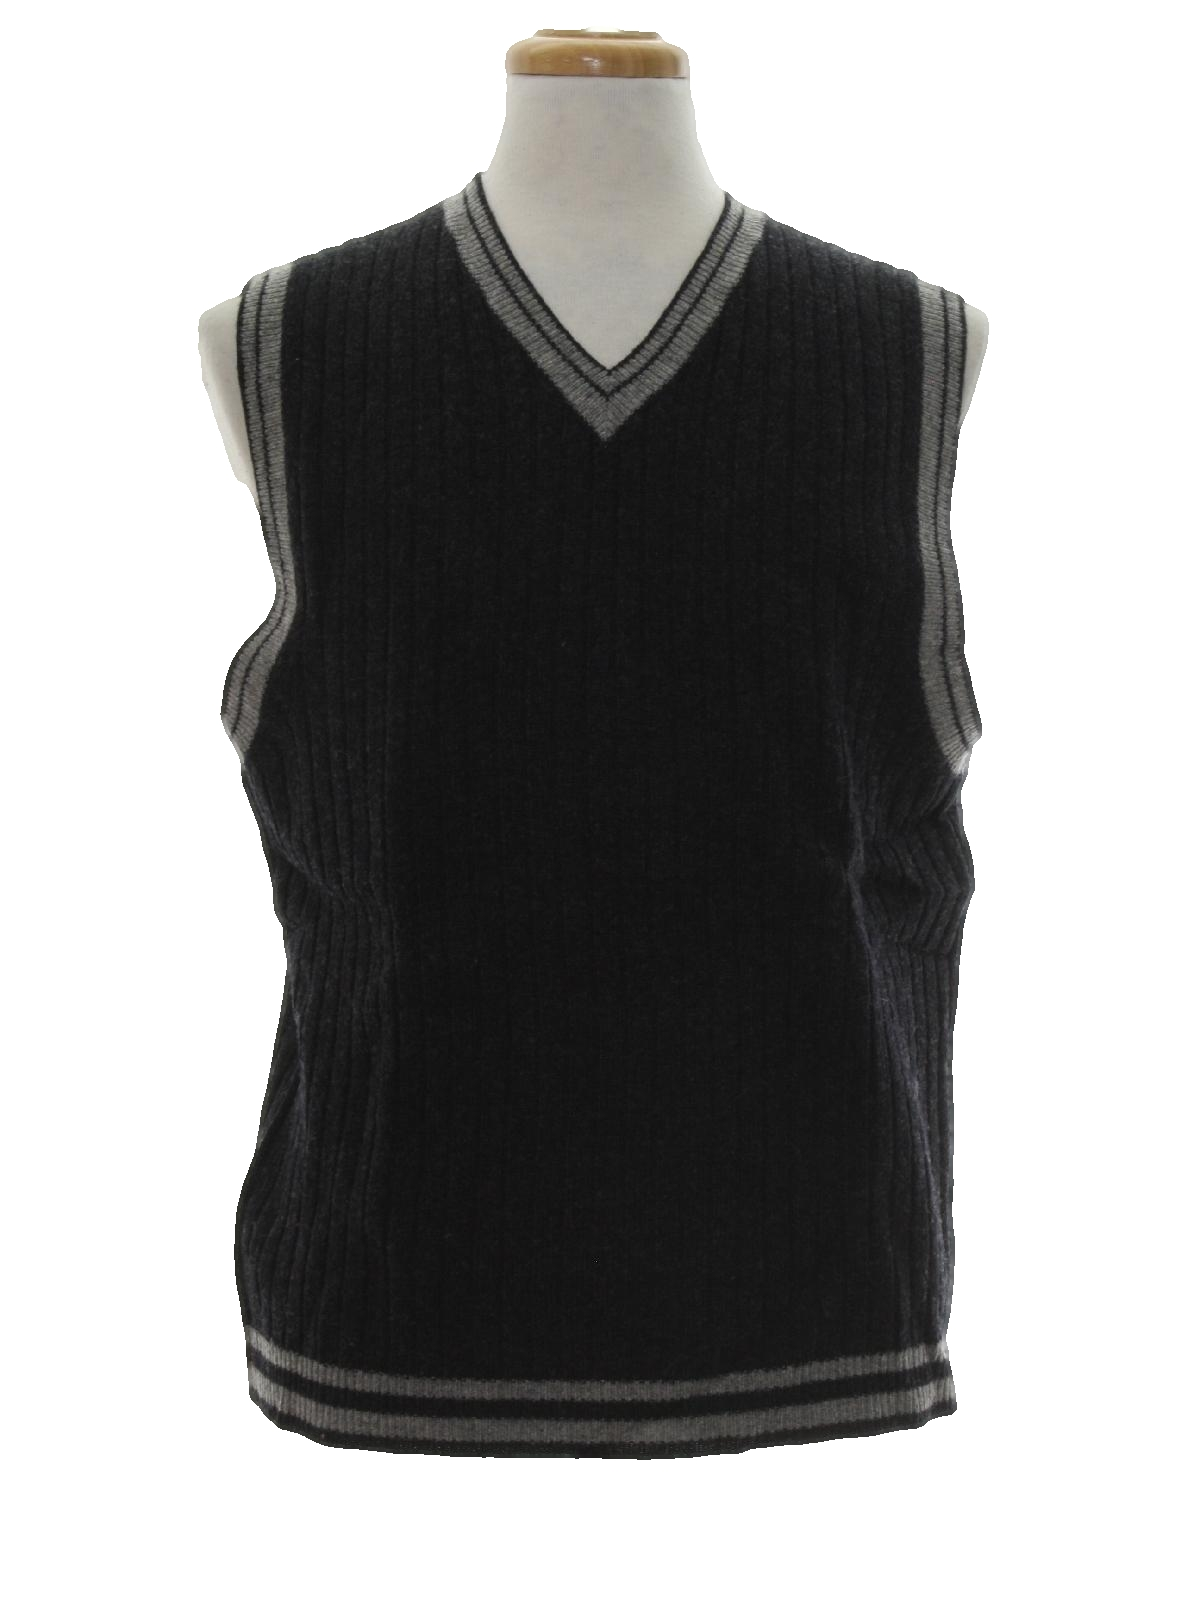 Nineties Vintage Sweater: 90s -Structure Urban Wear- Mens dark ...